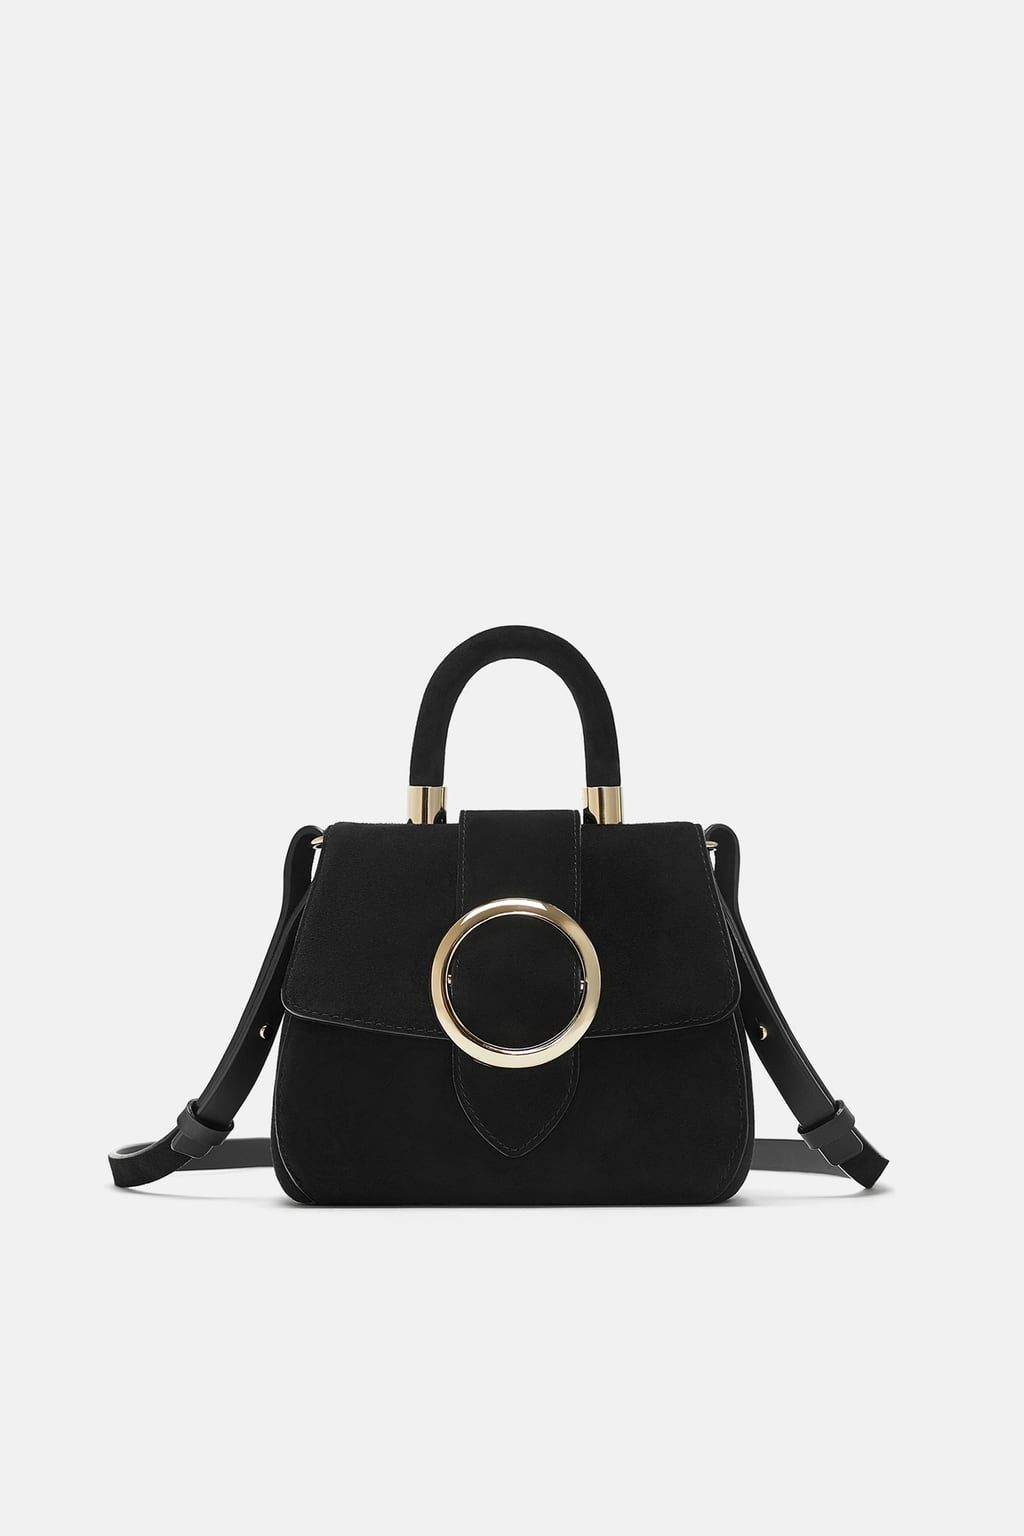 70232d842d Mini city bag with round clasp in 2019 | Clothes | Bags, City bag ...